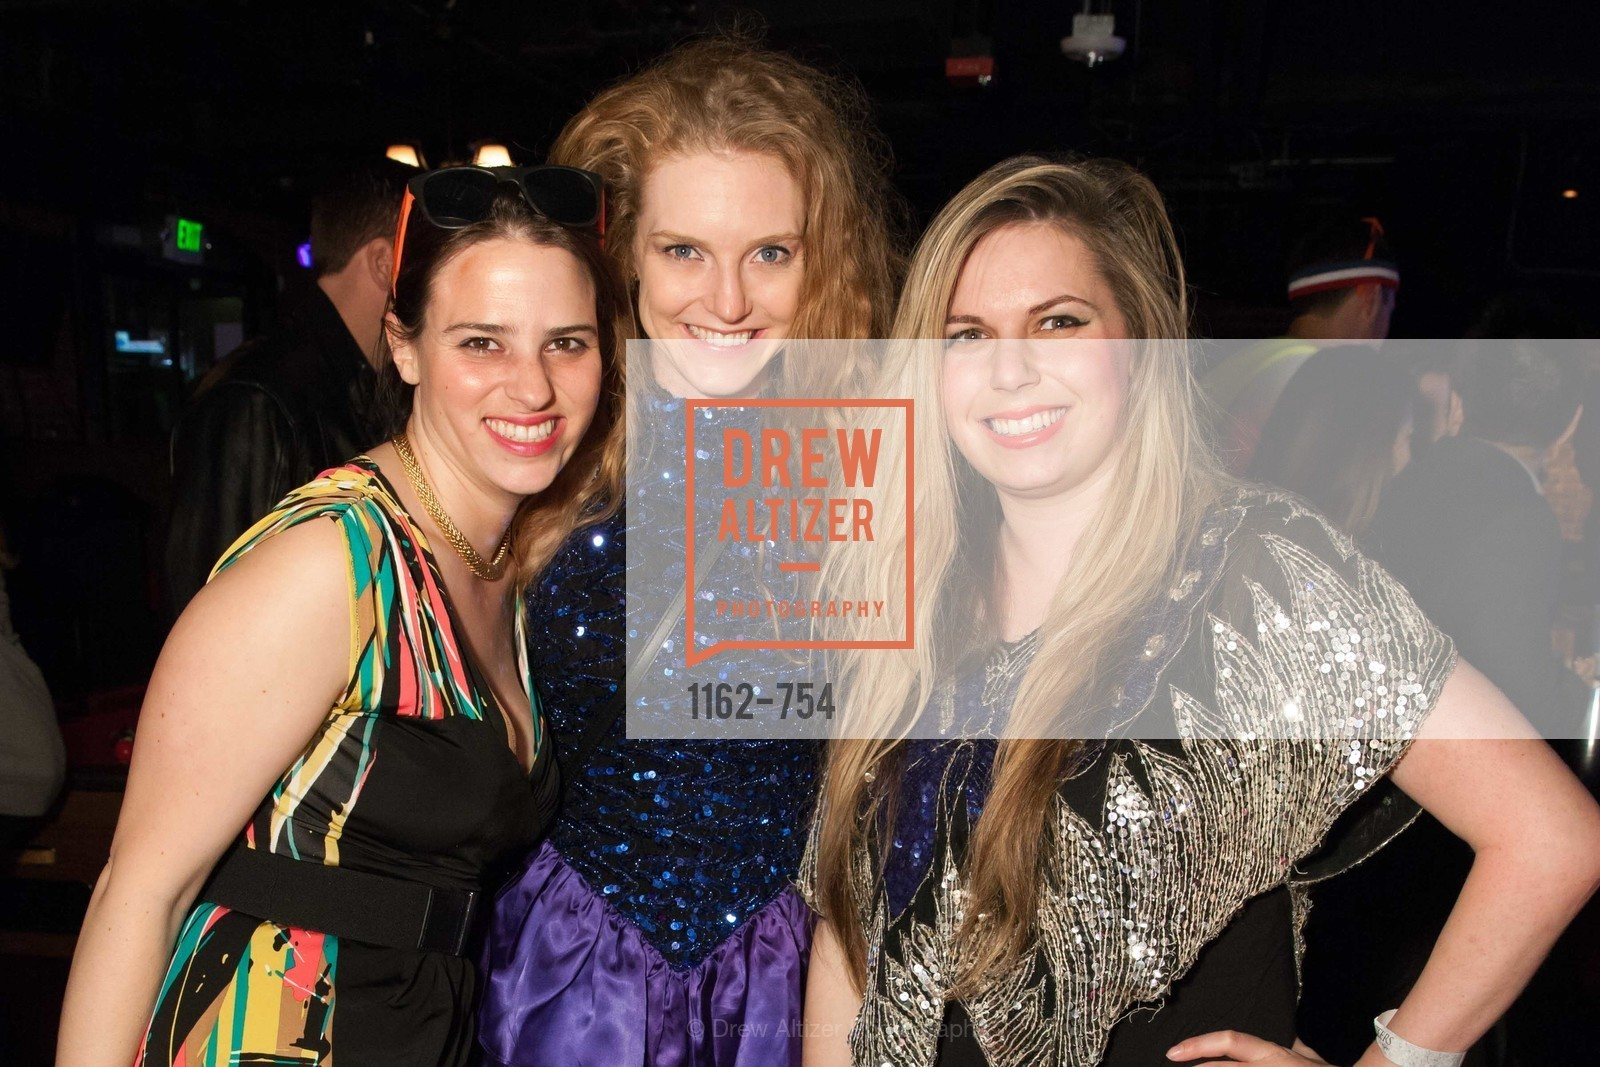 Bailey Douglass, Camille Schmidt, SPINSTERS OF SAN FRANCISCO Party Like It's 1985 Charity Party, US, Fort One Bar & Lounge. 2801 Leavenworth St, May 30th, 2015,Drew Altizer, Drew Altizer Photography, full-service agency, private events, San Francisco photographer, photographer california